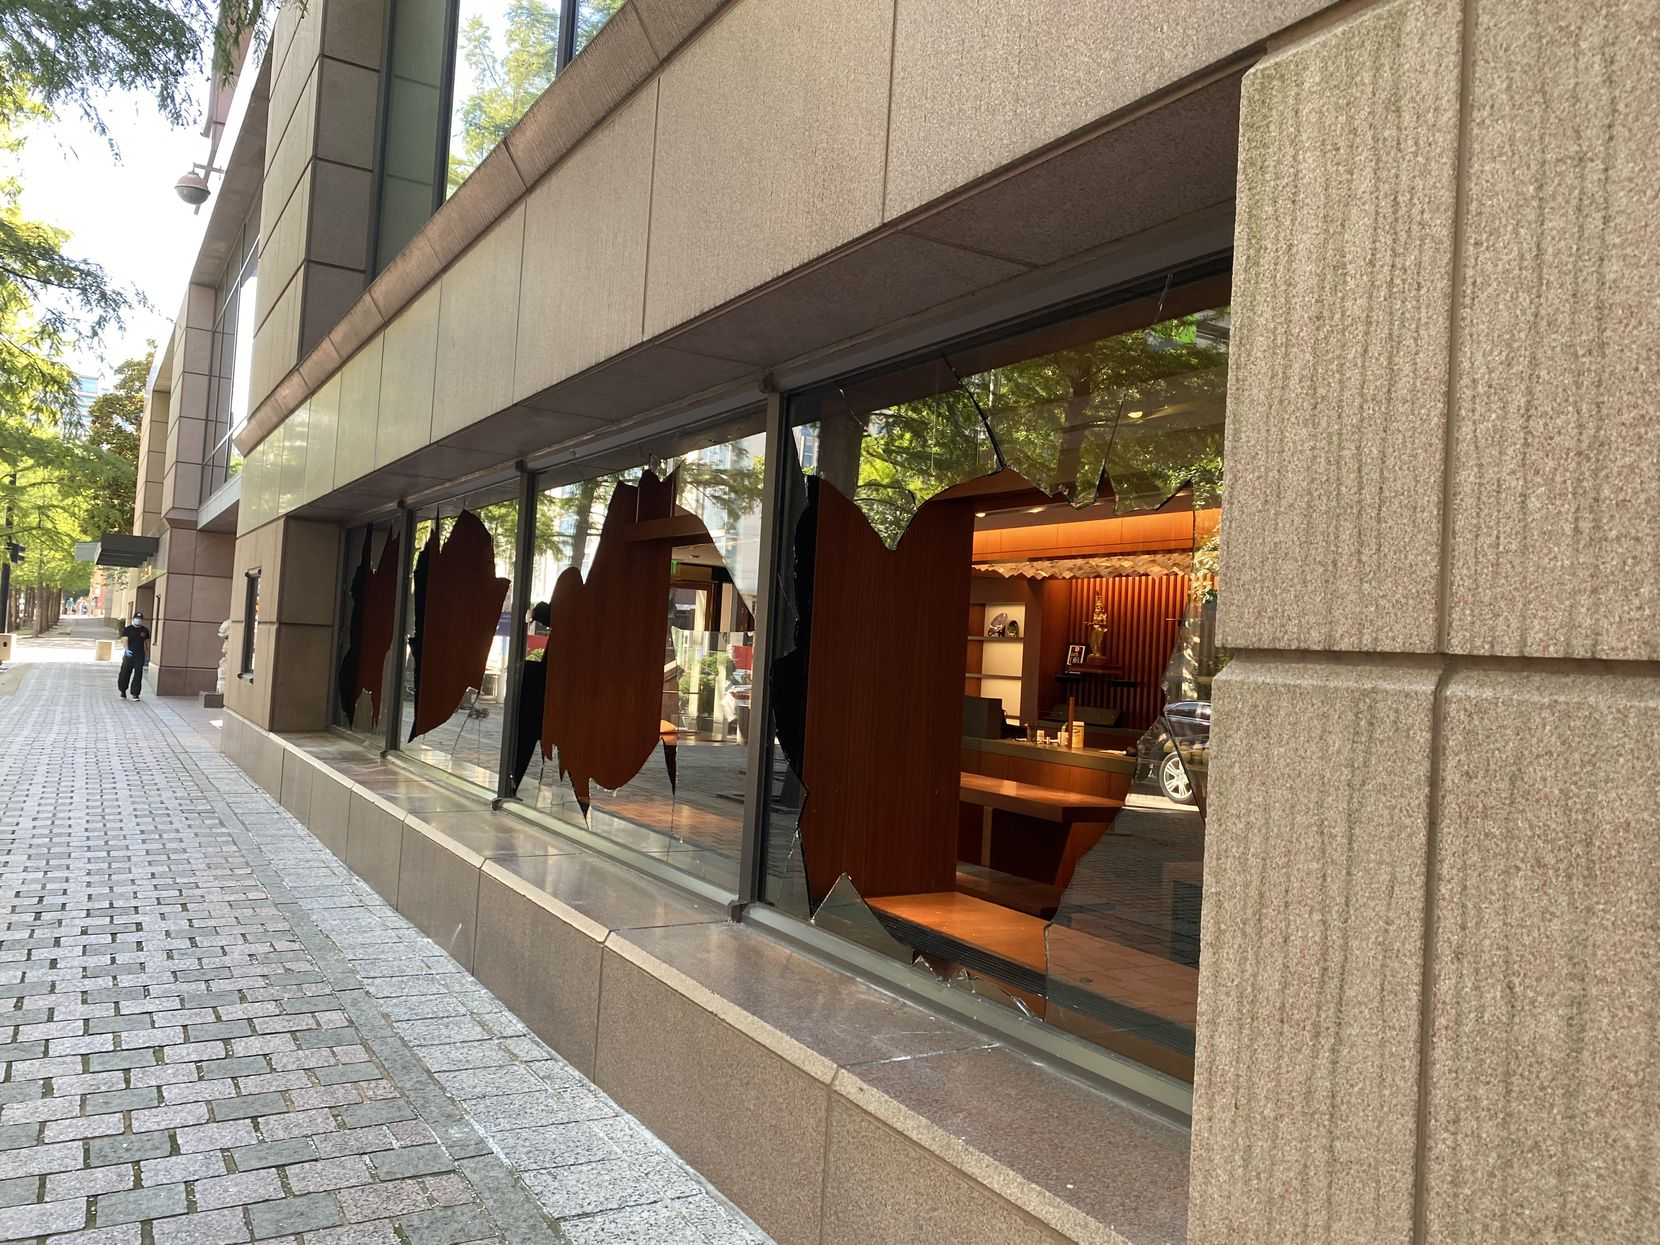 This photo, taken May 31, 2020, shows the extensive damage inflicted on the Crow Museum of Asian Art on Flora Street during vandalism that occurred in downtown Dallas. The photo was taken by the Nasher's Jill Magnuson while inspecting damage in the area.